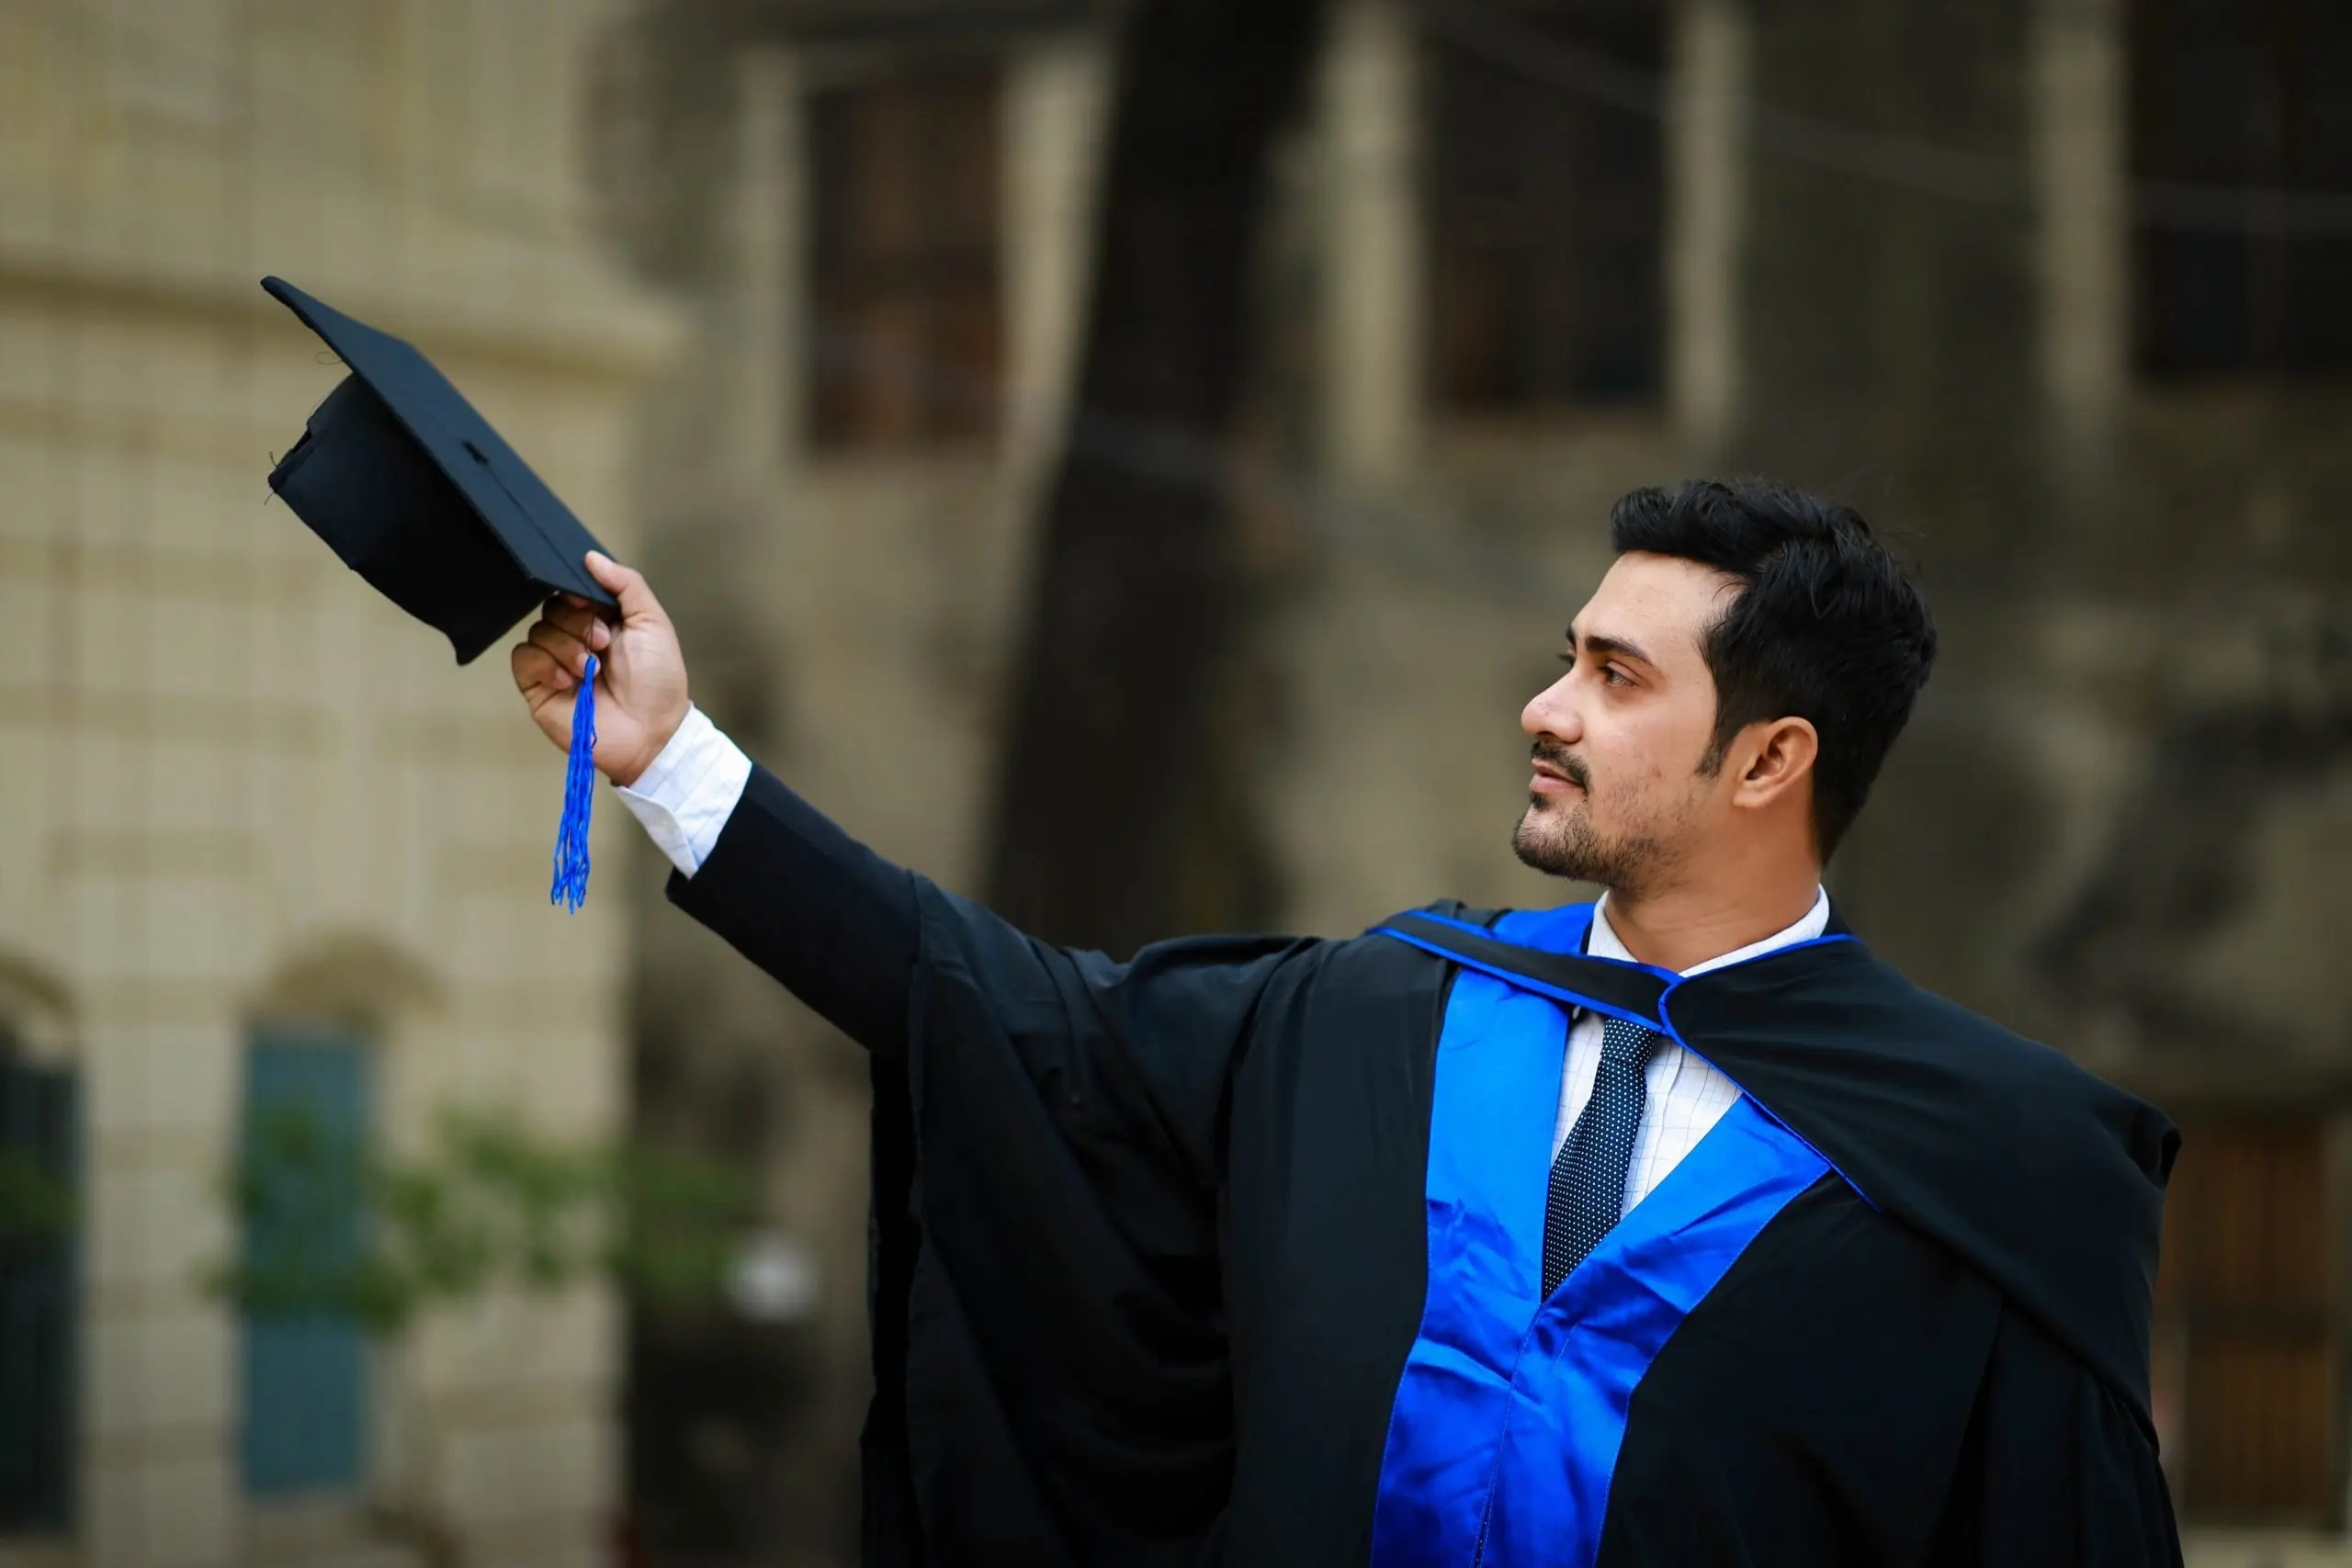 Male graduate in a cap and gown - symbolizing student success